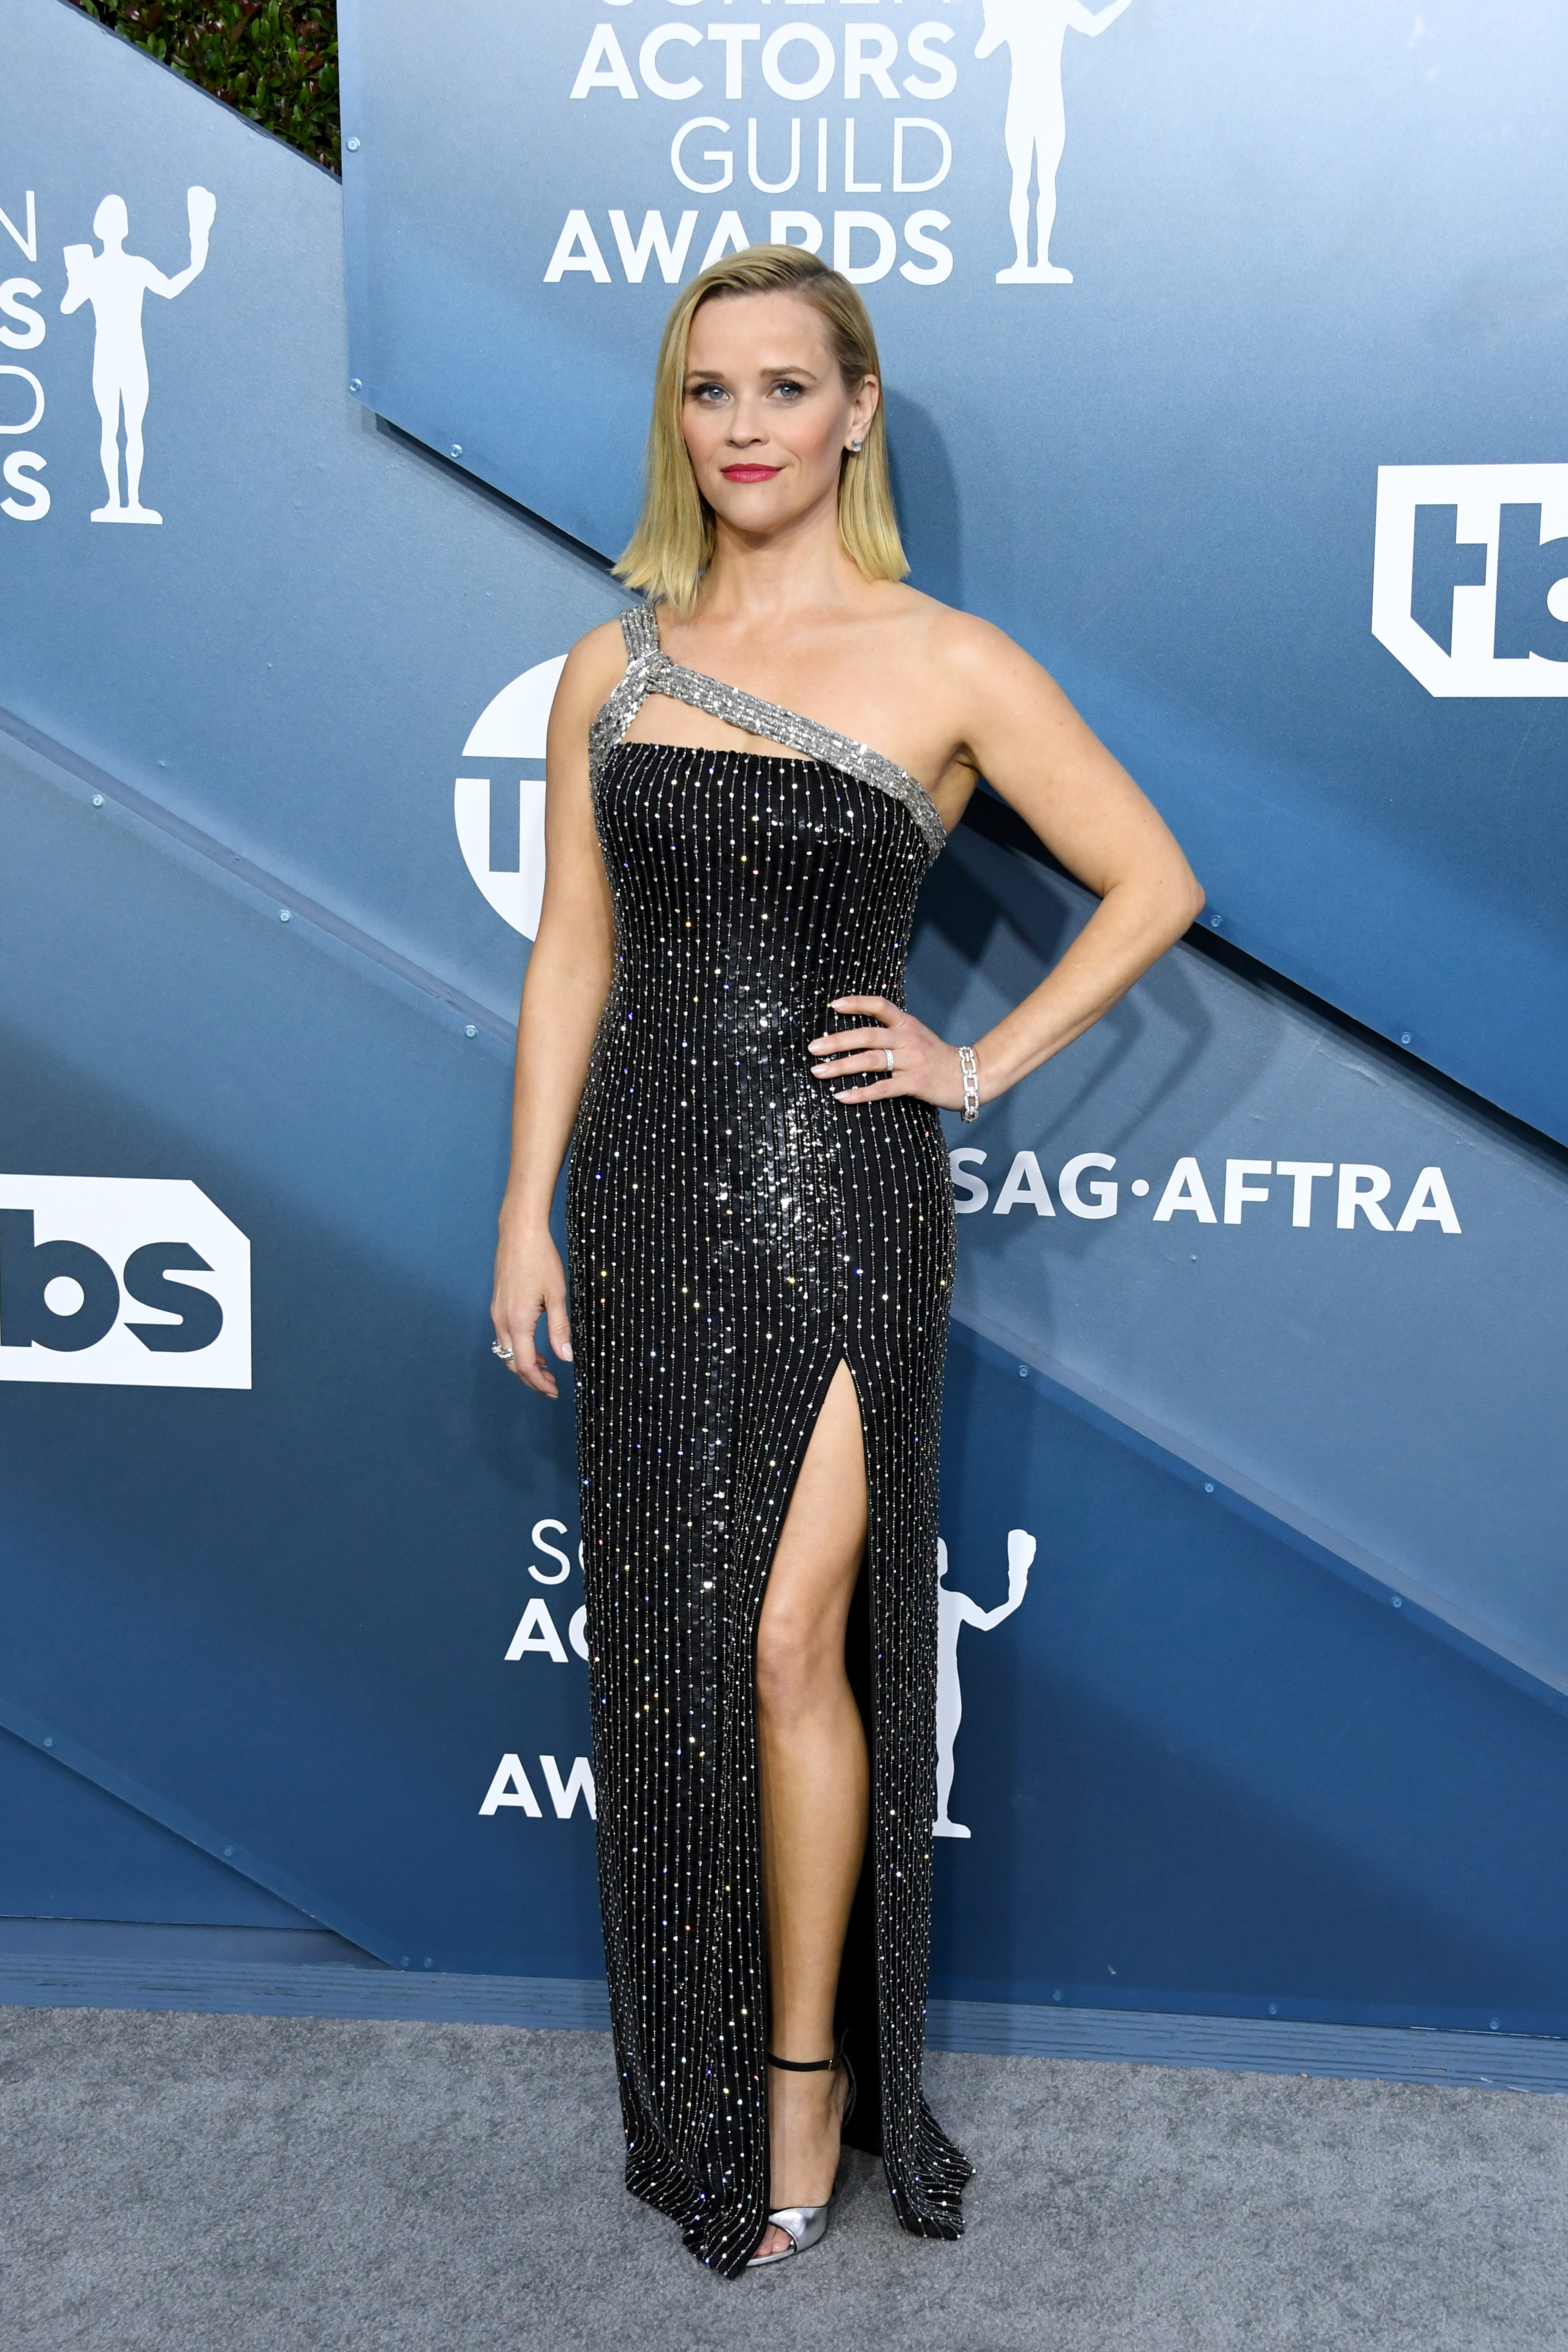 LOS ANGELES, CALIFORNIA - JANUARY 19: Reese Witherspoon attends the 26th Annual Screen ActorsGuild Awards at The Shrine Auditorium on January 19, 2020 in Los Angeles, California. (Photo by Jon Kopaloff/Getty Images)